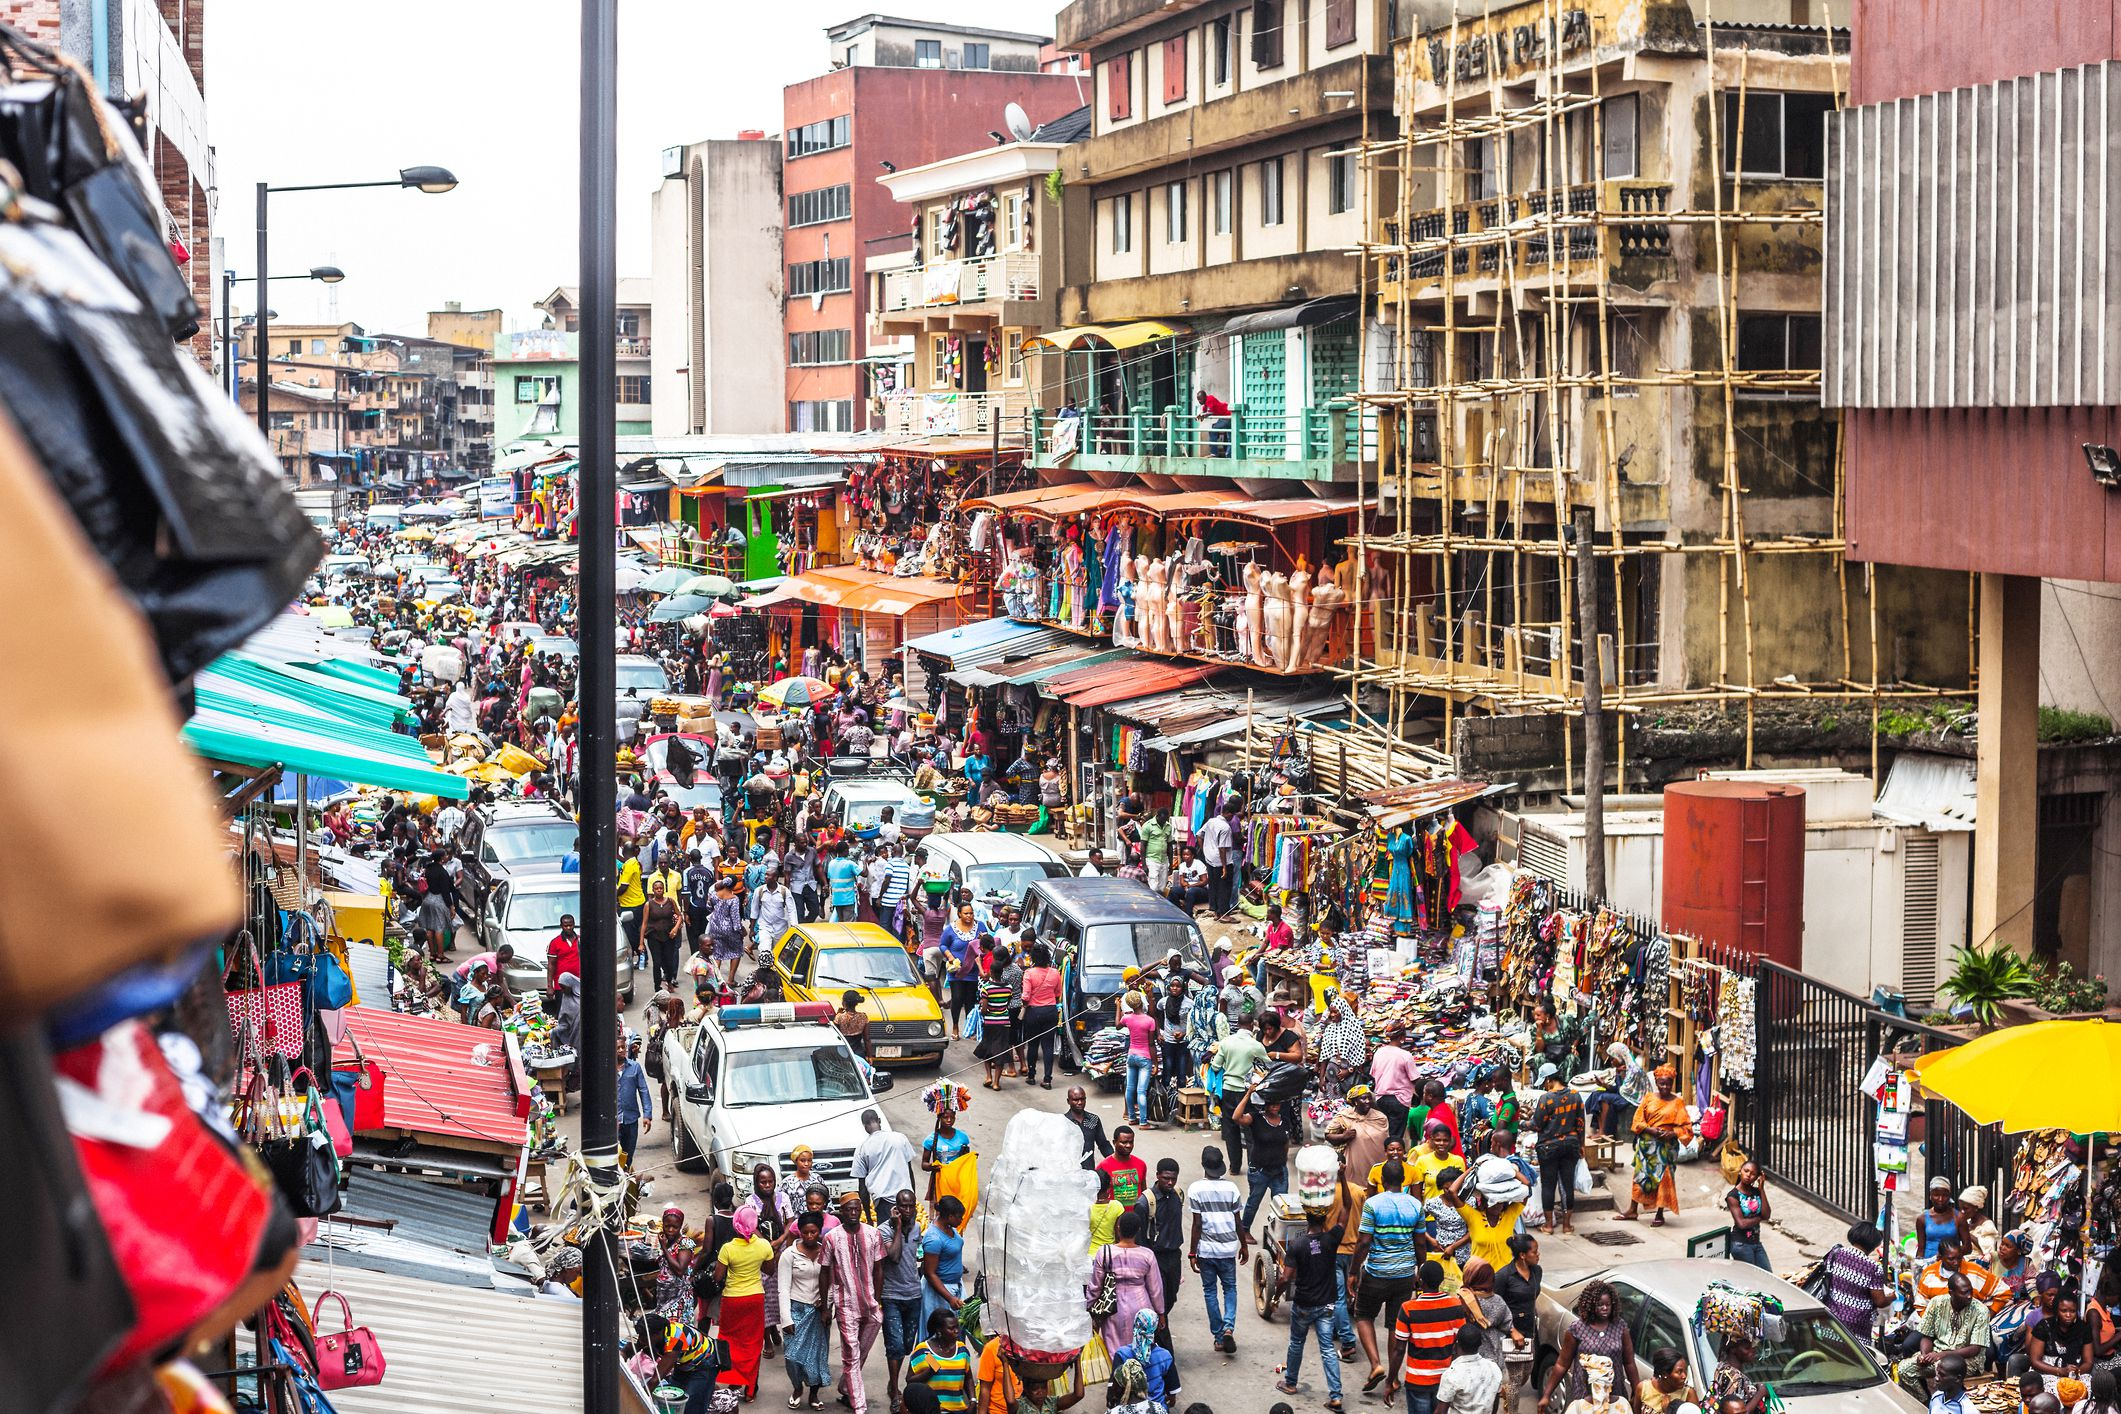 10 Best Things to Do in Nigeria